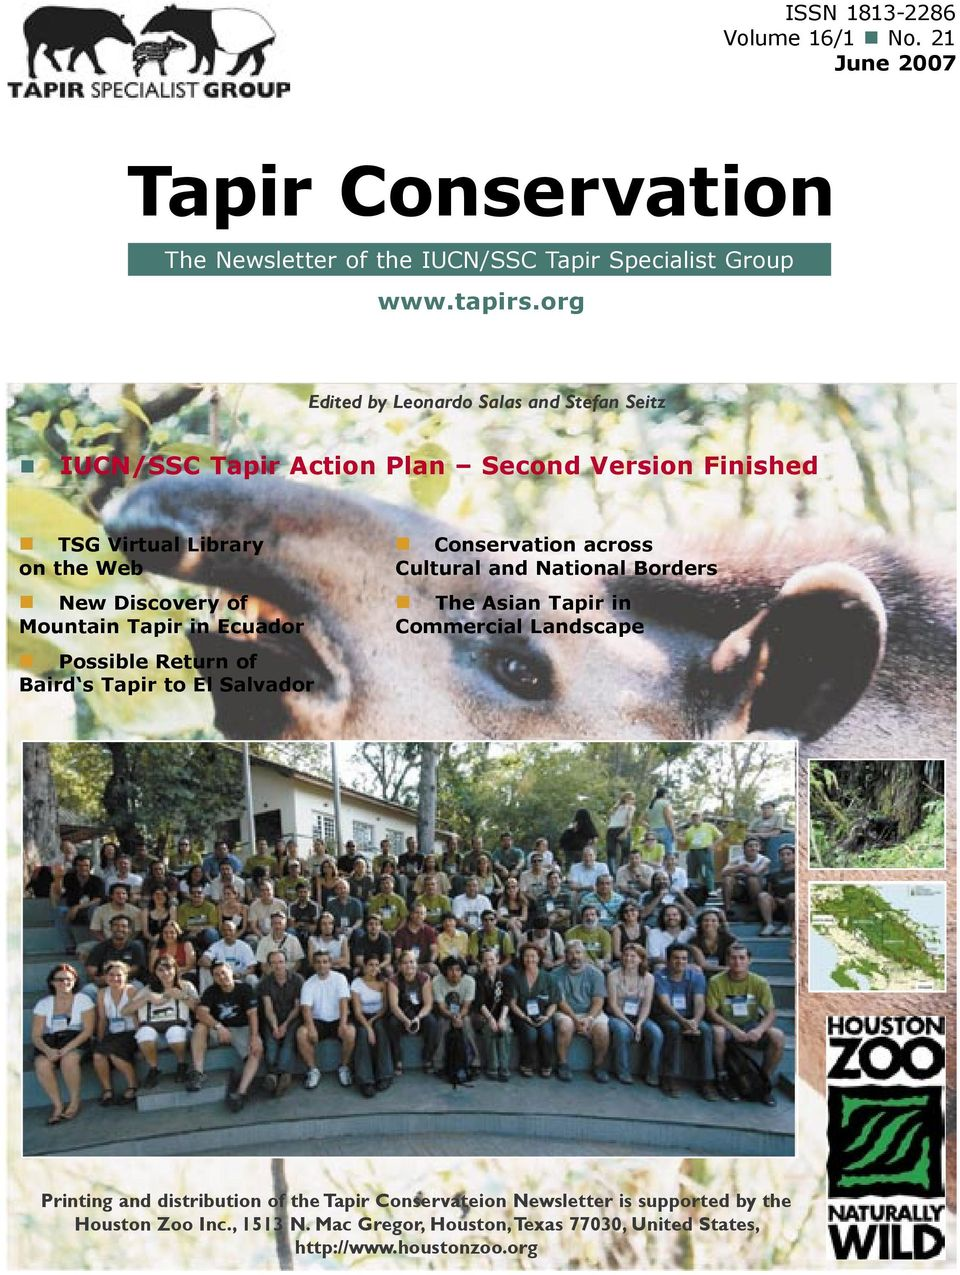 Tapir in Ecuador Possible Return of Baird s Tapir to El Salvador Conservation across Cultural and National Borders The Asian Tapir in Commercial Landscape